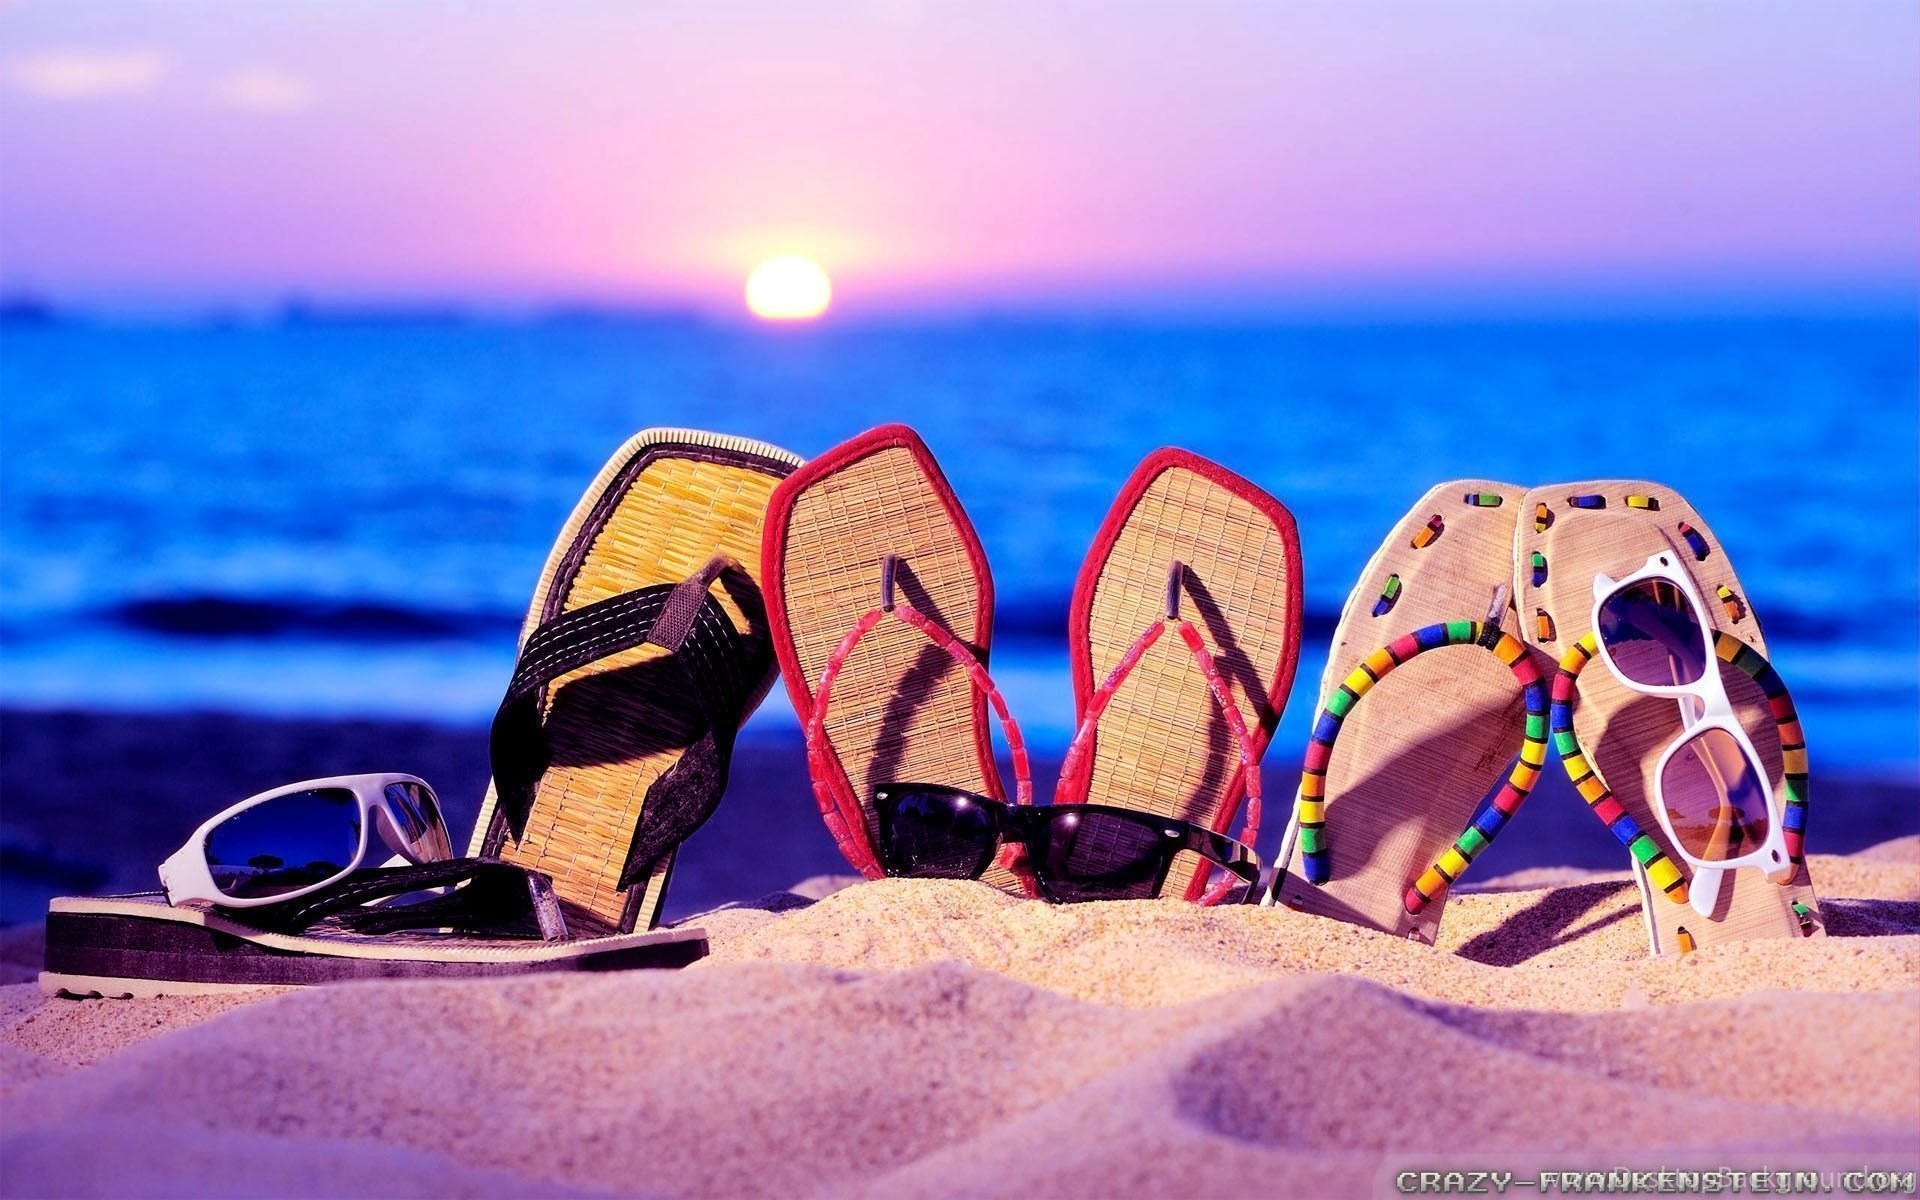 Summer Background Download Free Awesome Wallpapers For: Fun Free Summer Desktop Wallpapers 1920x1200px Desktop